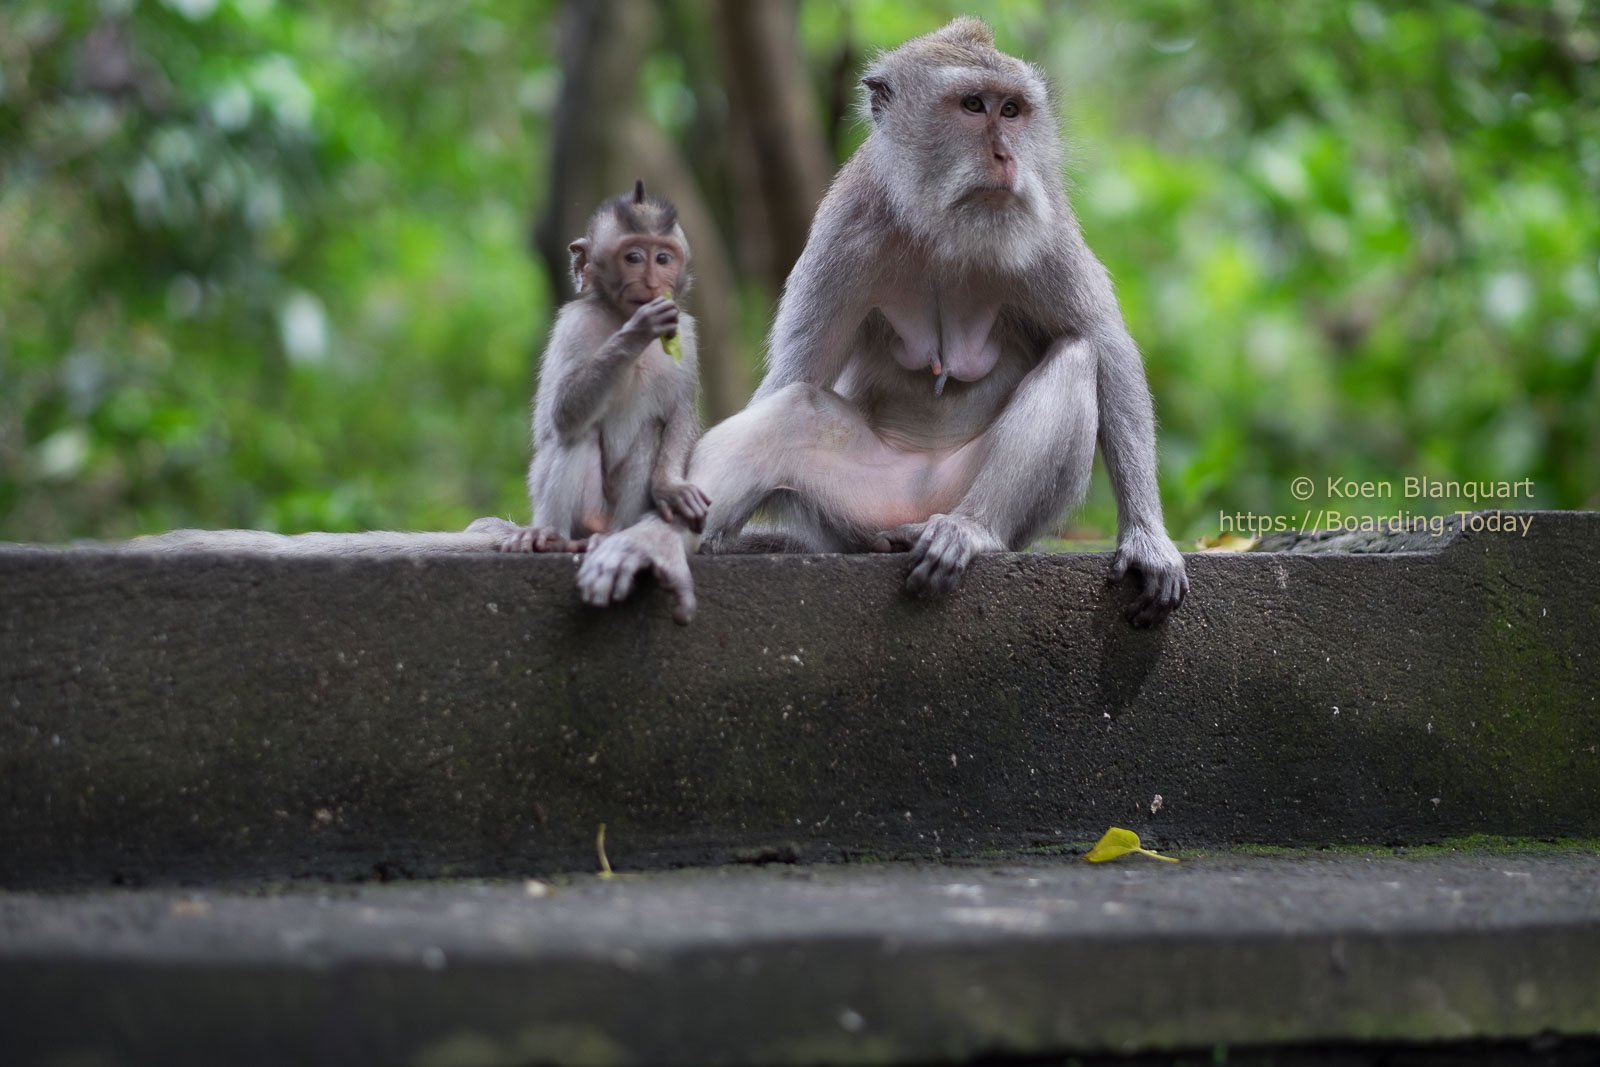 Monkeys in the sacred Monkey Forest Sanctuary in Ubud, Bali, Indonesia